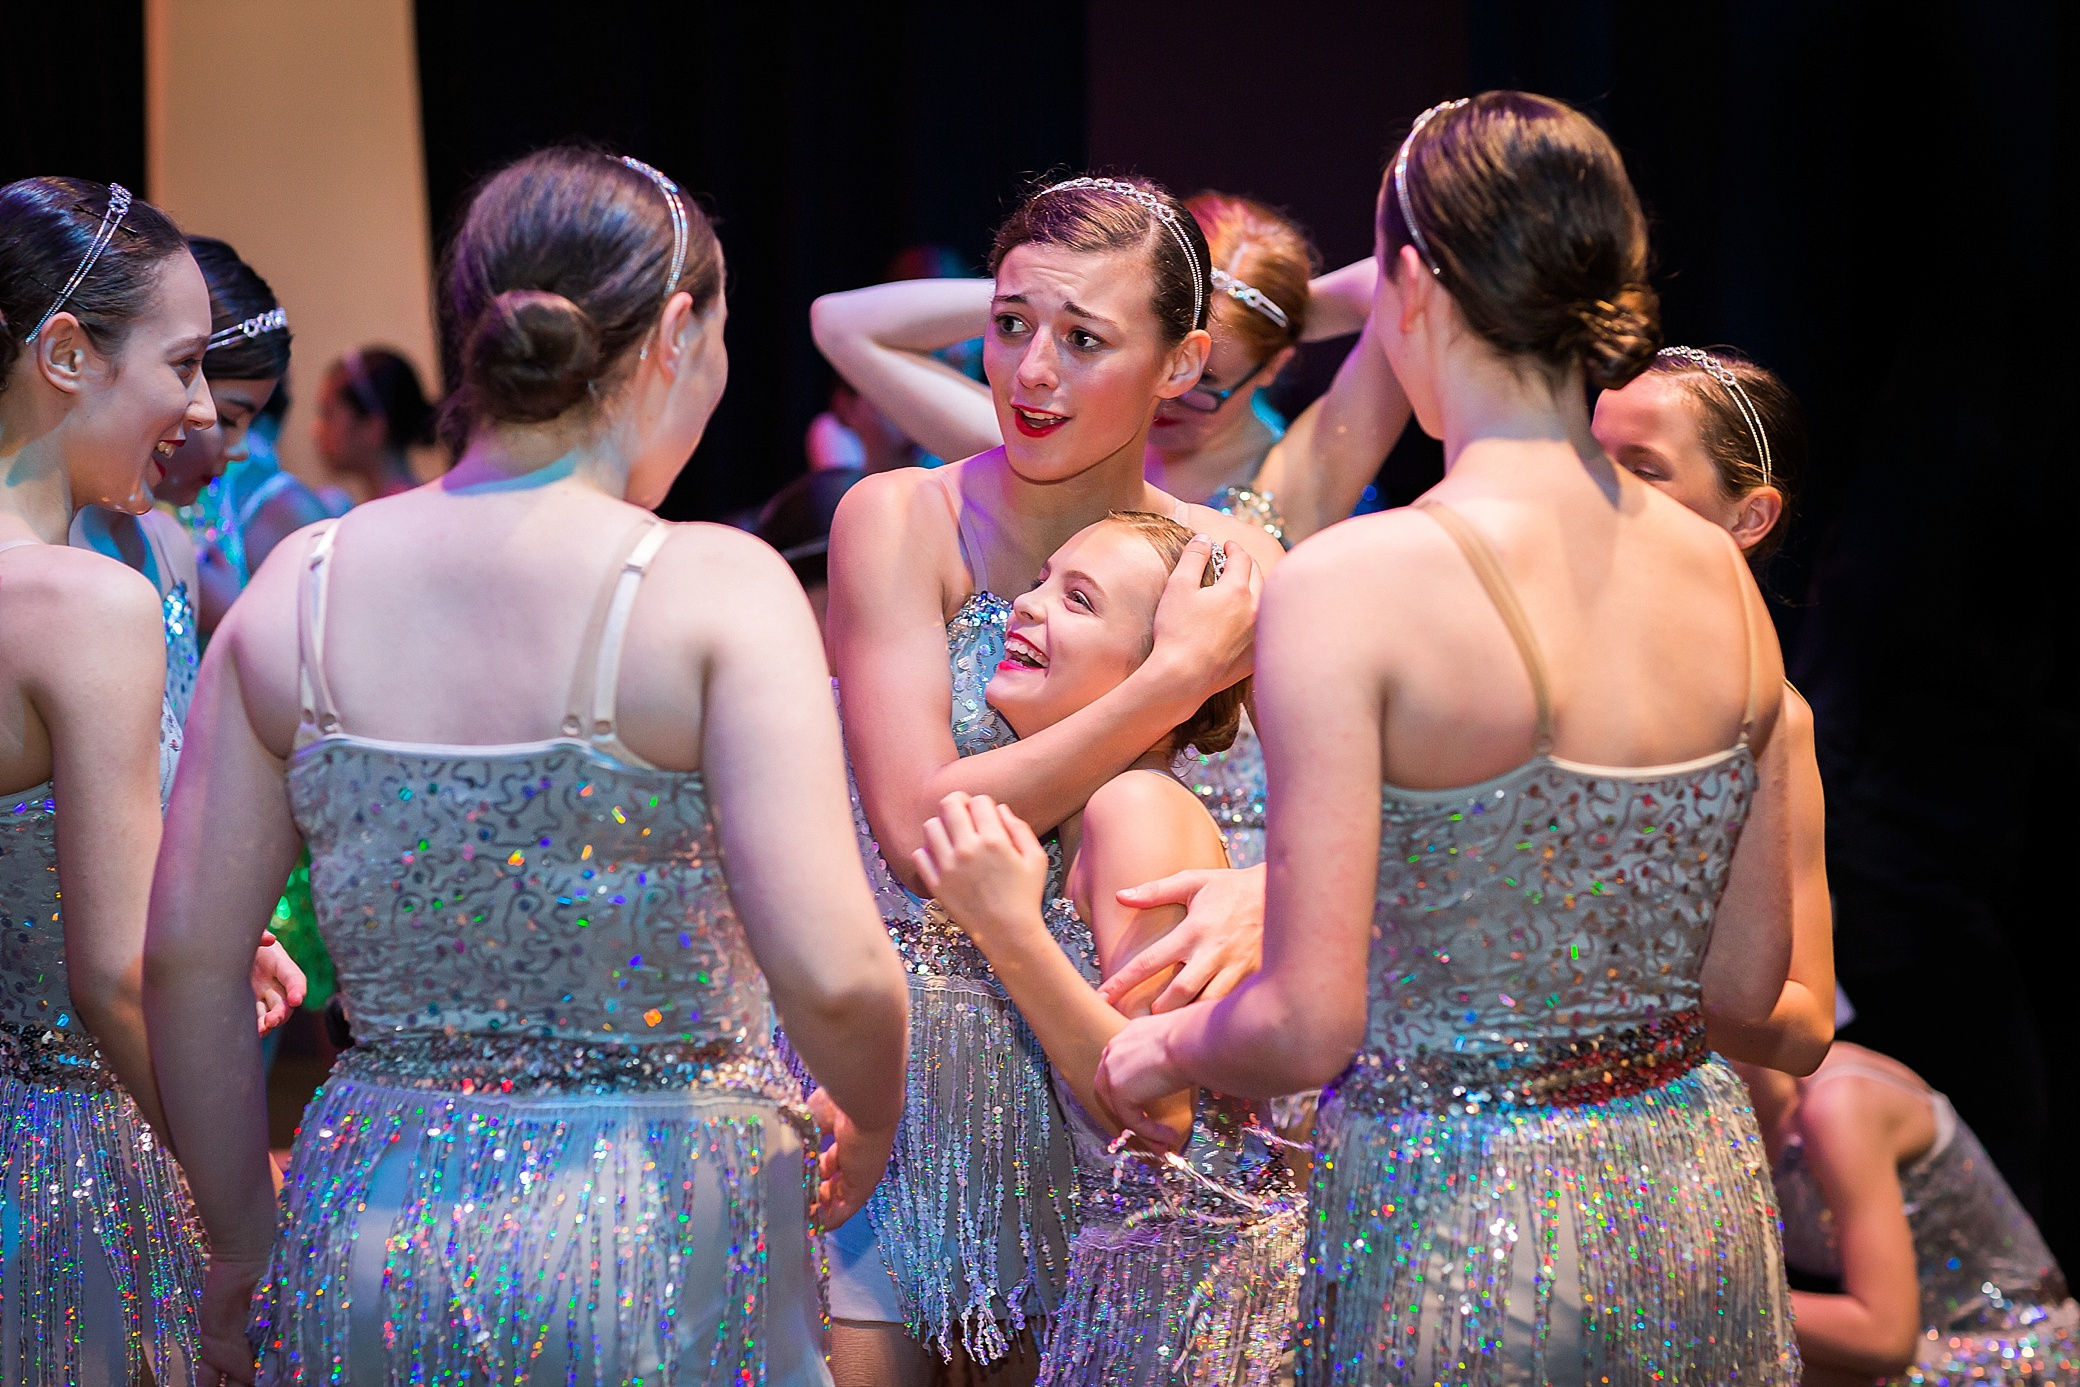 Dancers hugging before their performance at The Exchange theatre in Twickenham